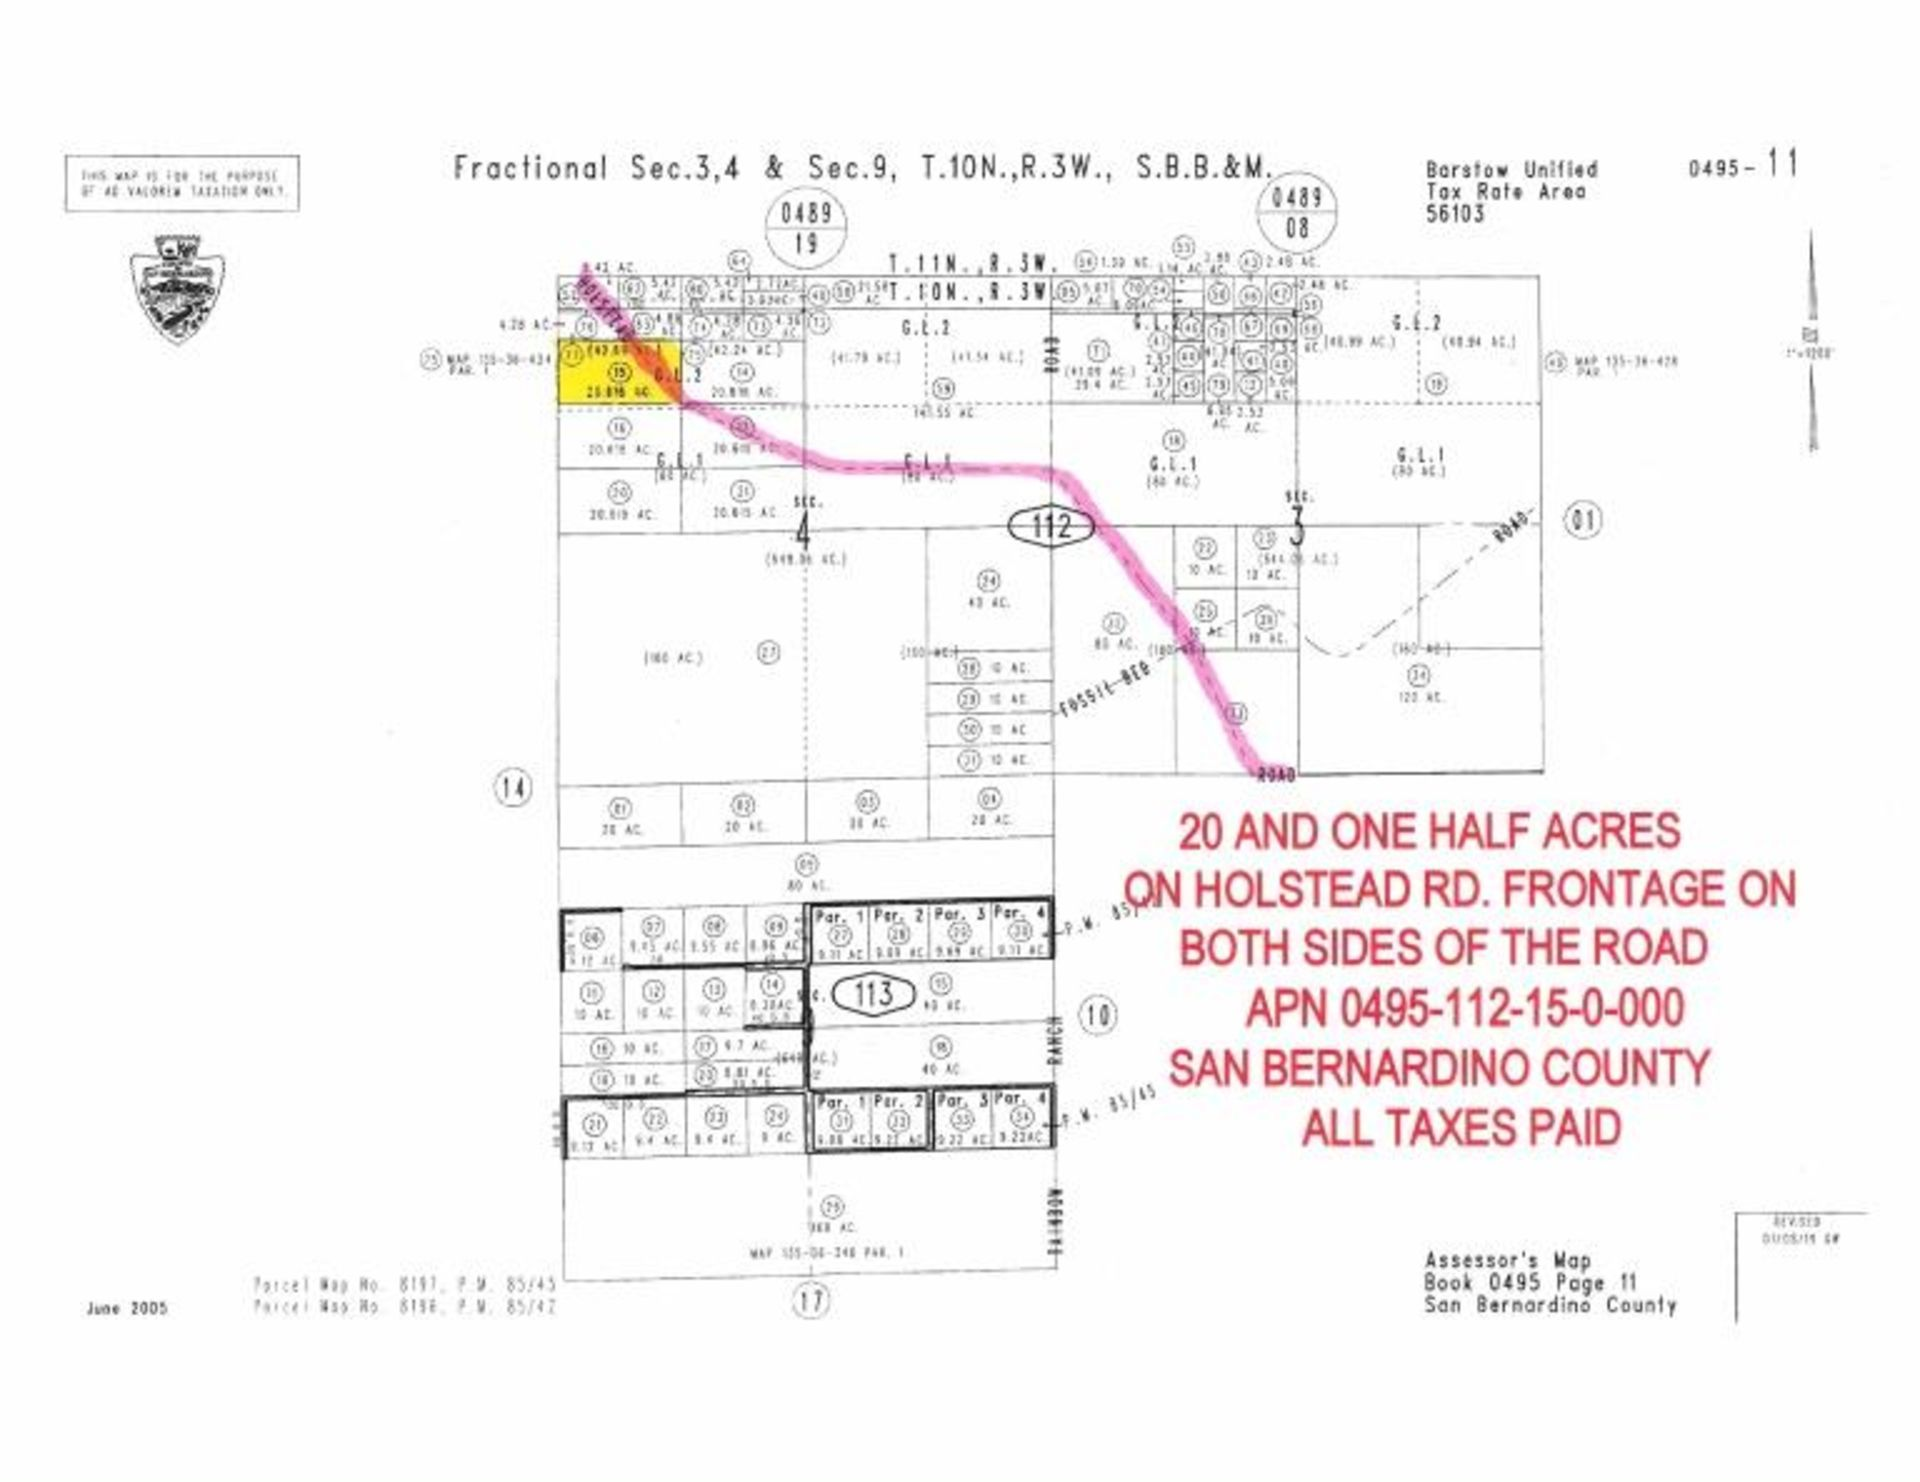 Lot 497 - 20.616 Acre Vacant Parcel, Near Barstow,